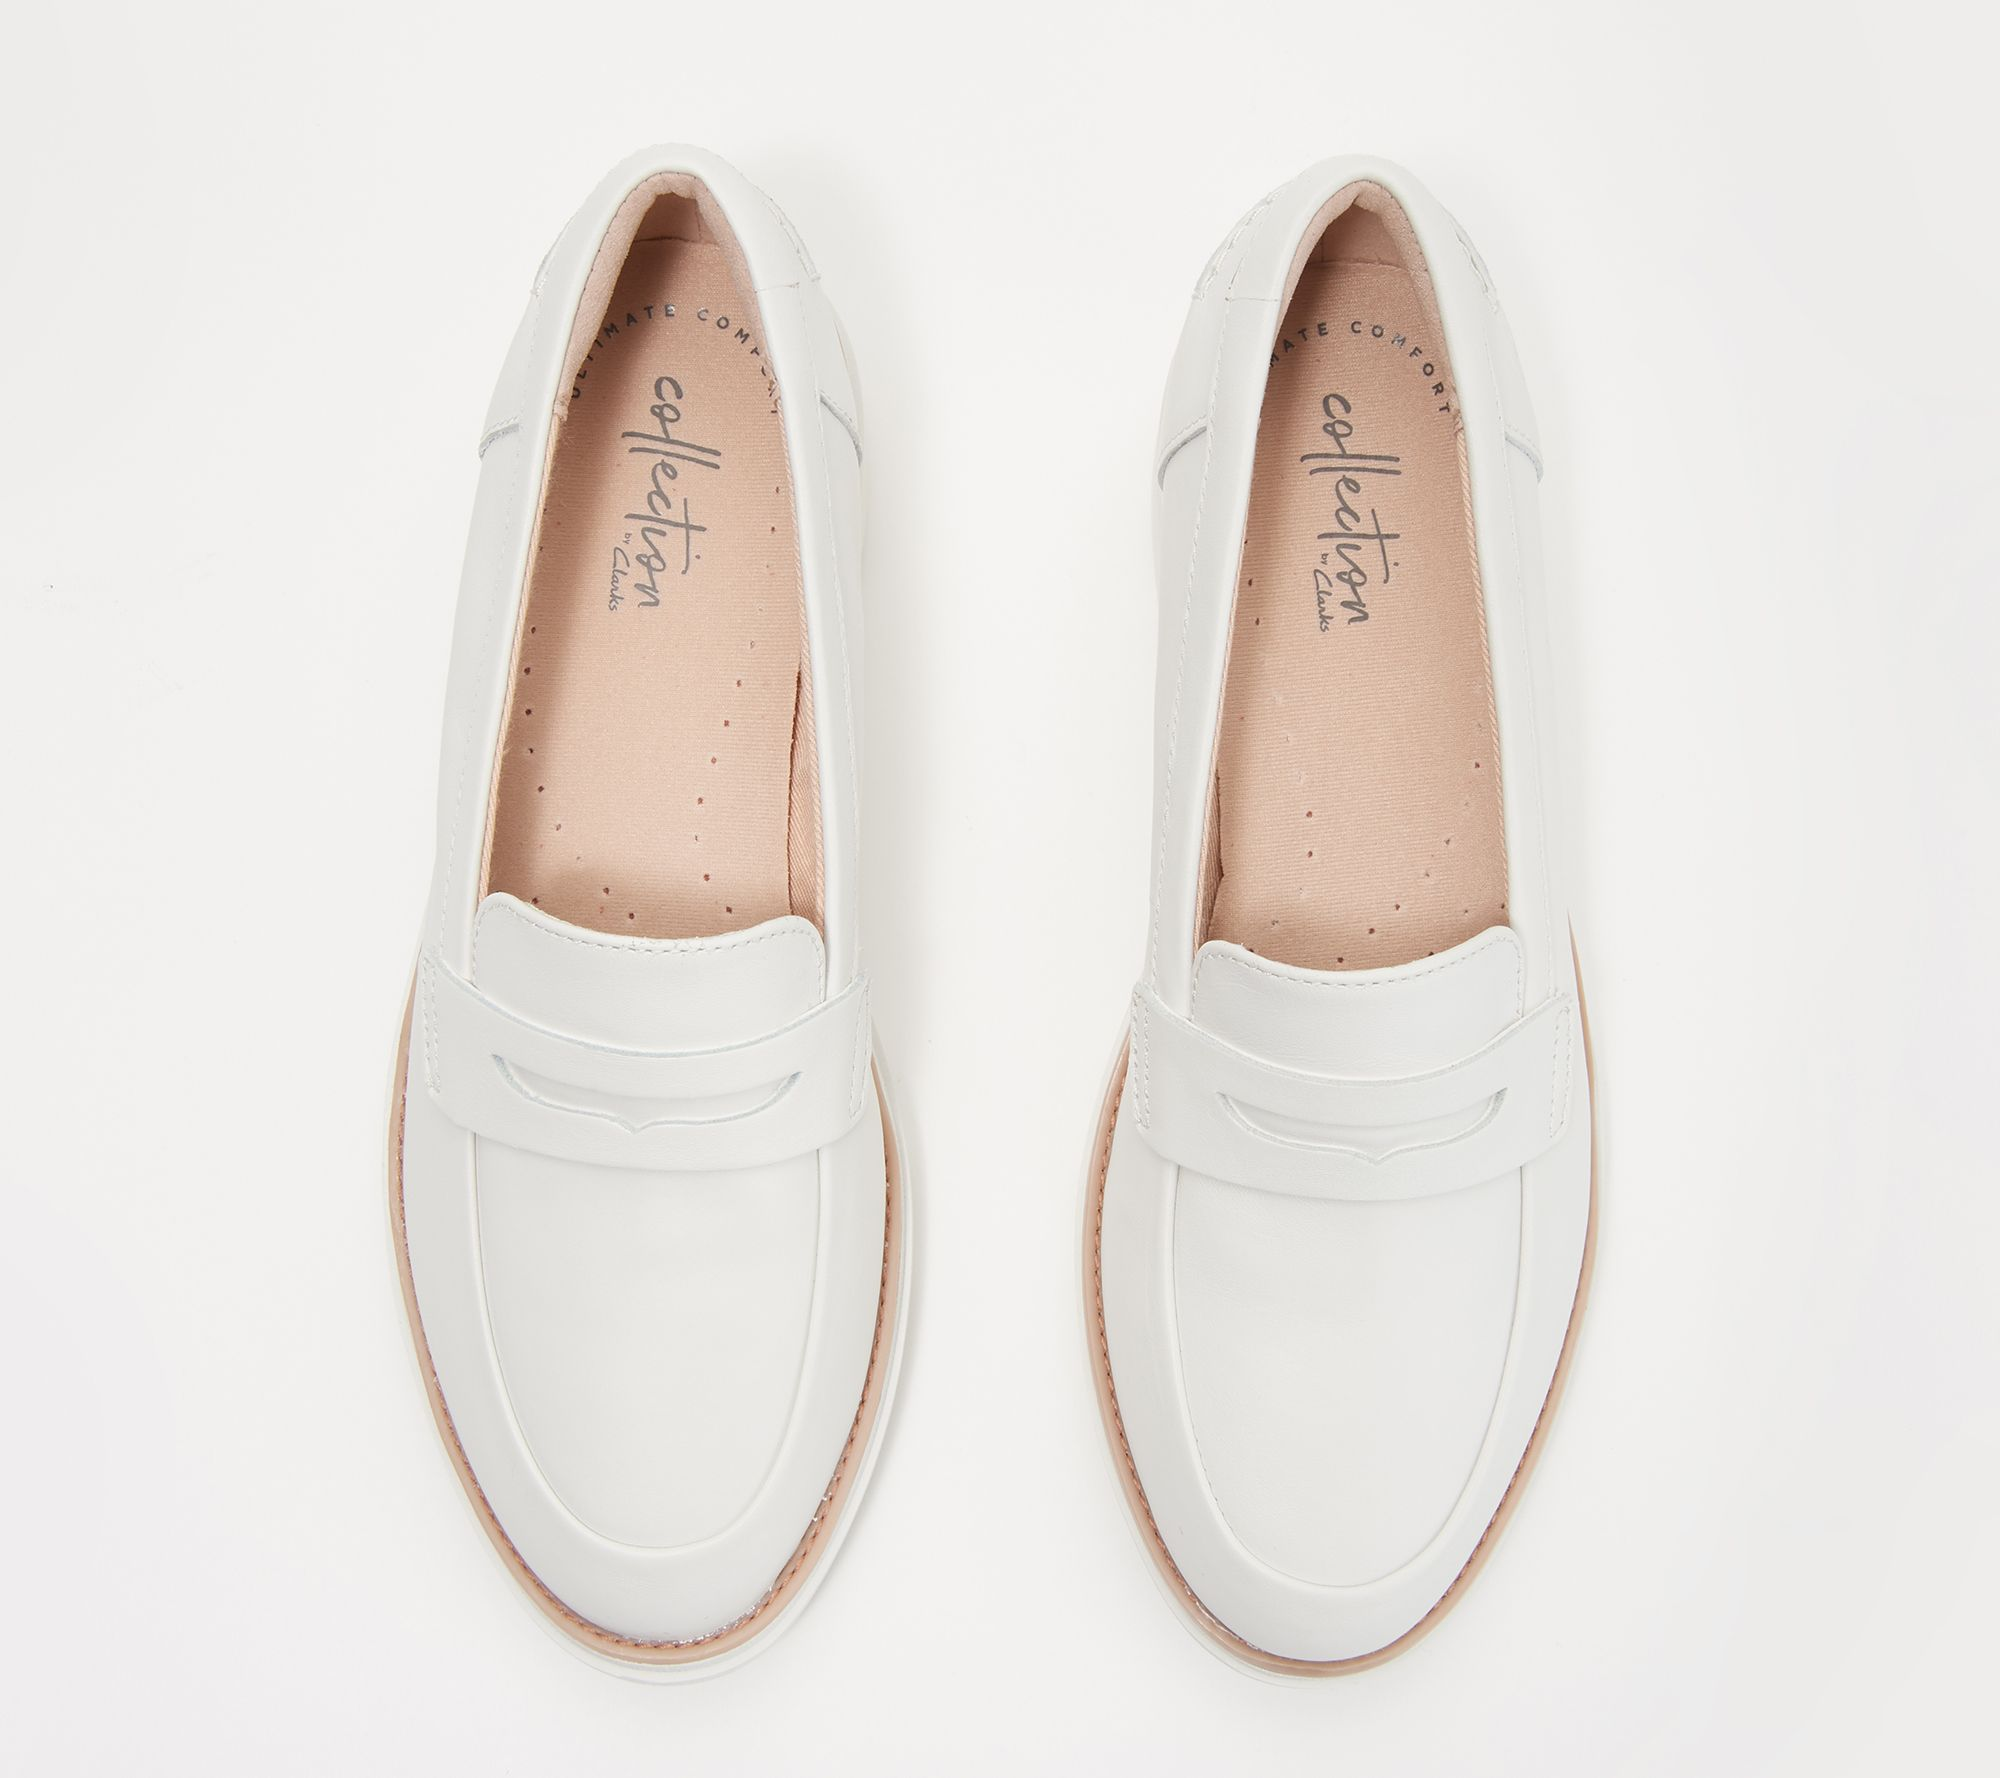 4d992401b5a9a Clarks Collection Leather Loafers - Sharon Ranch - Page 1 — QVC.com